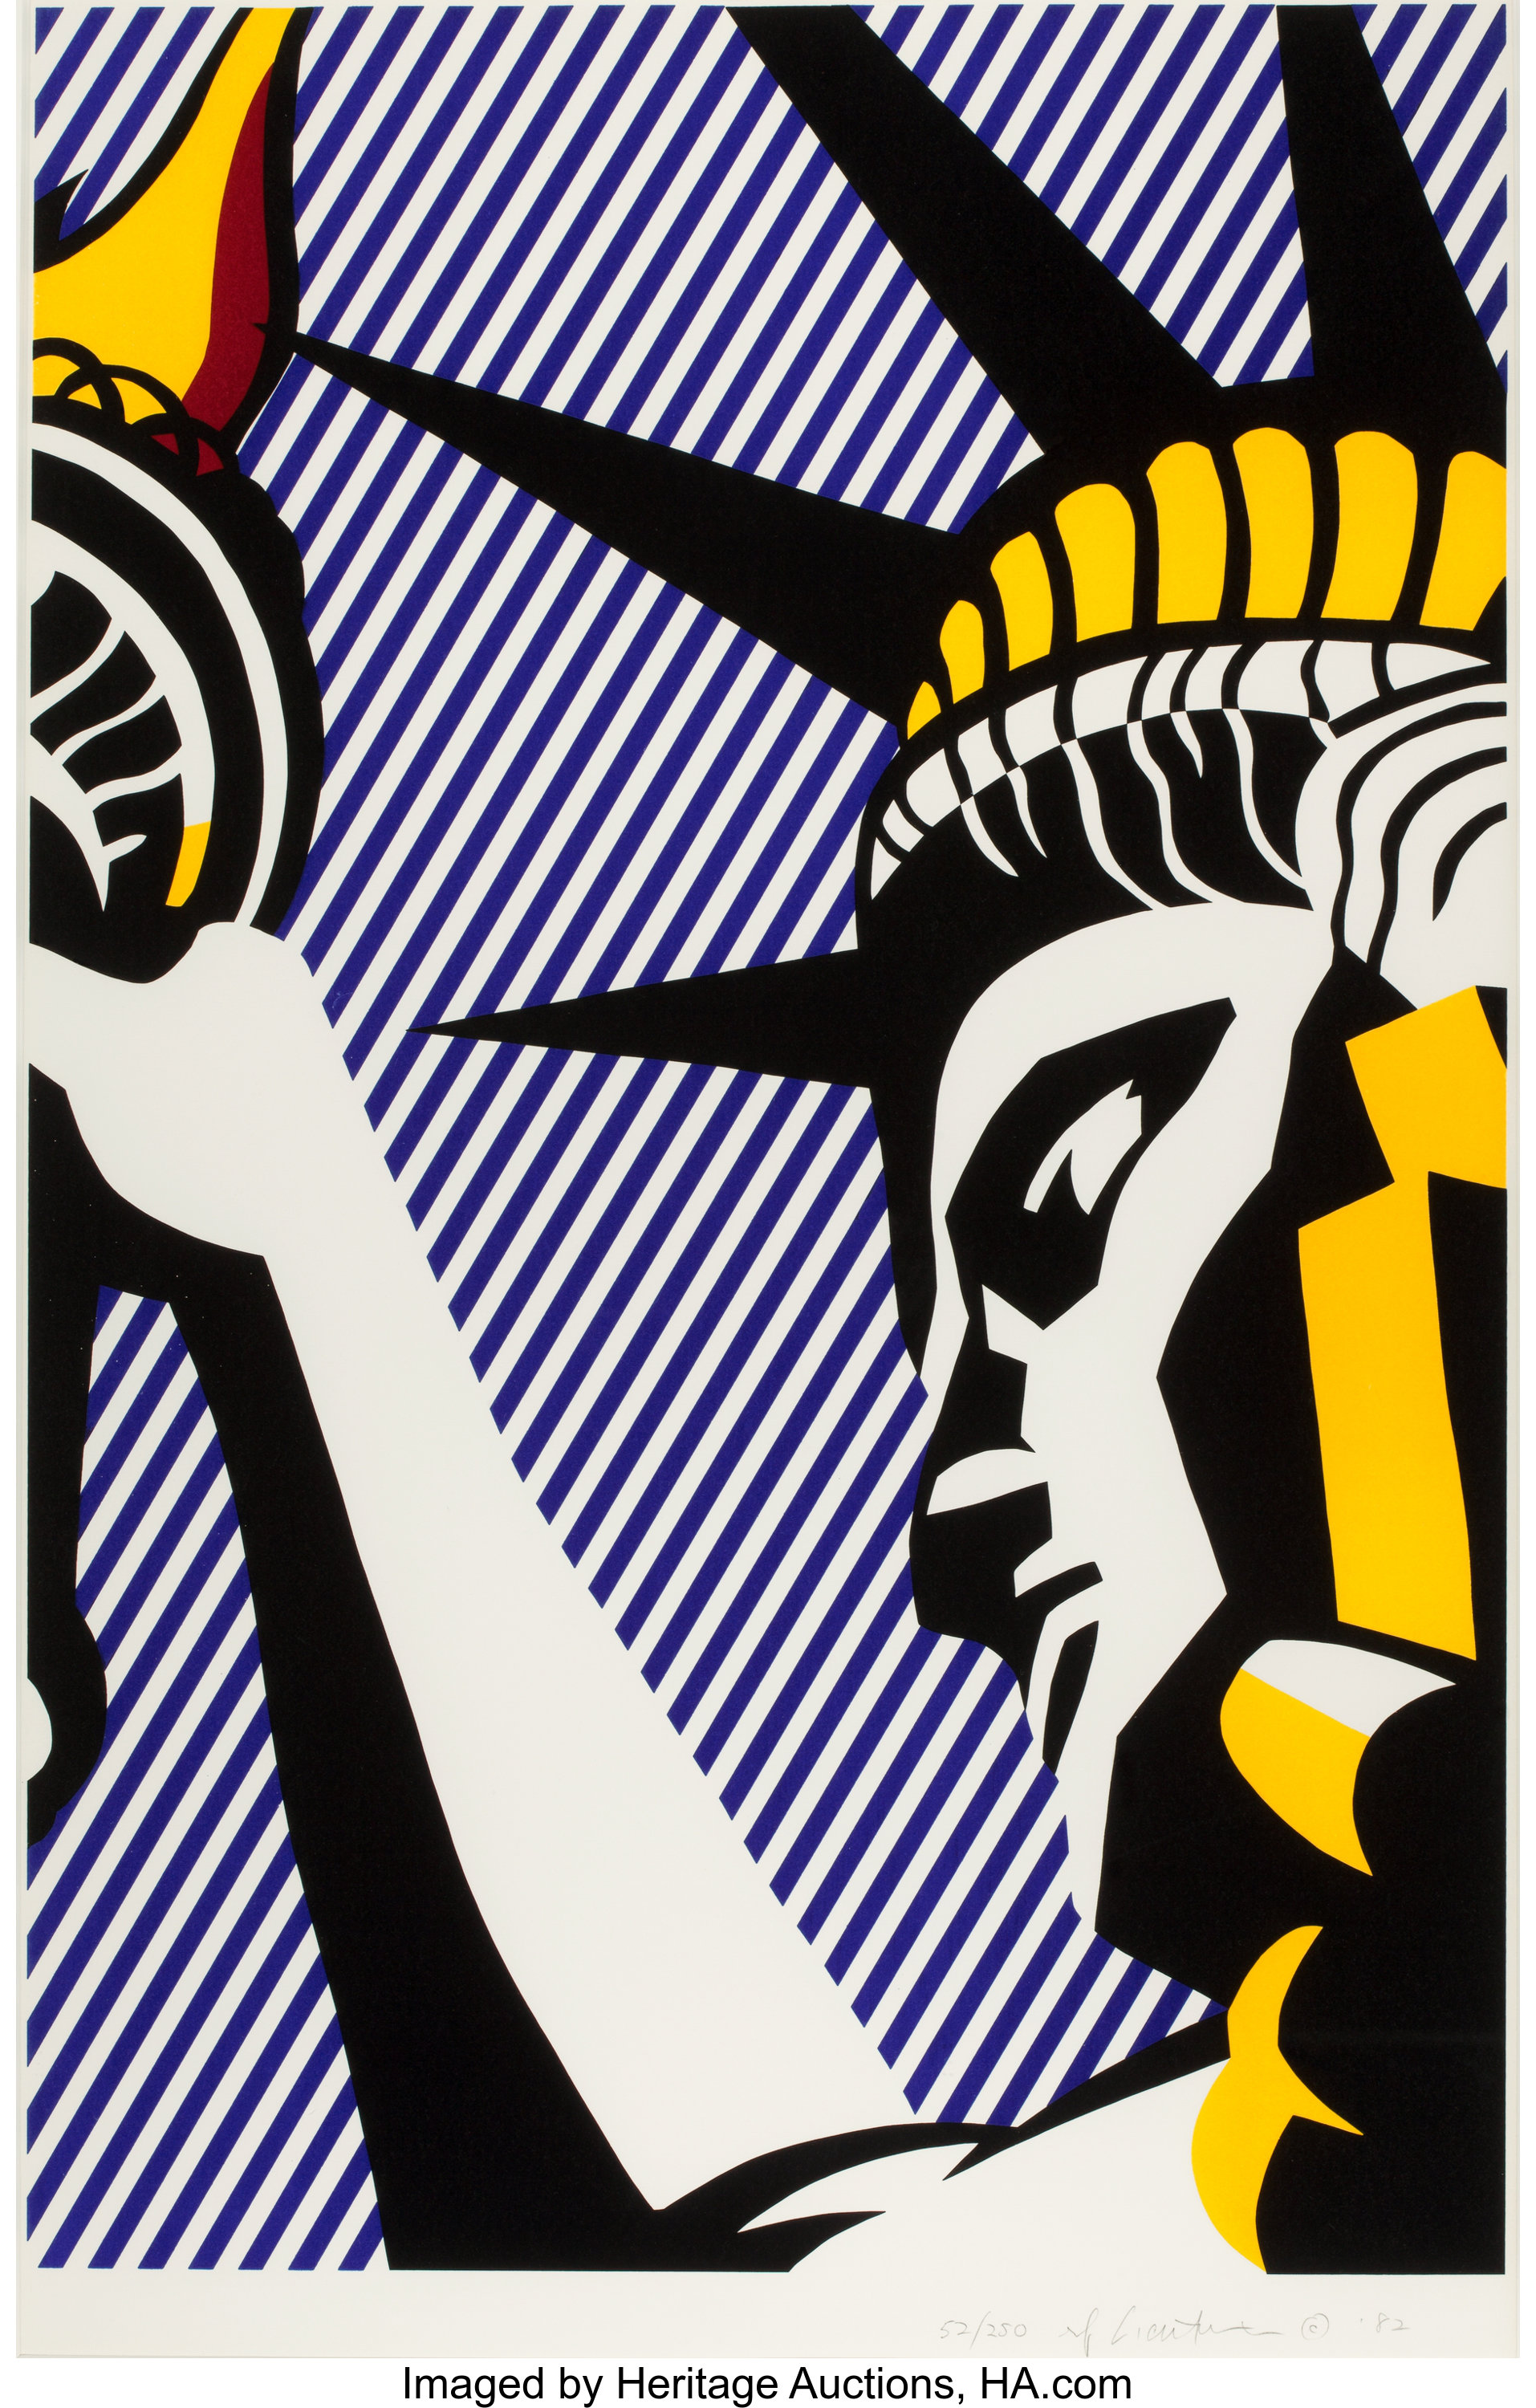 ROY LICHTENSTEIN (American, 1923-1997). I Love Liberty, 1982. | Lot #76103 | Heritage Auctions